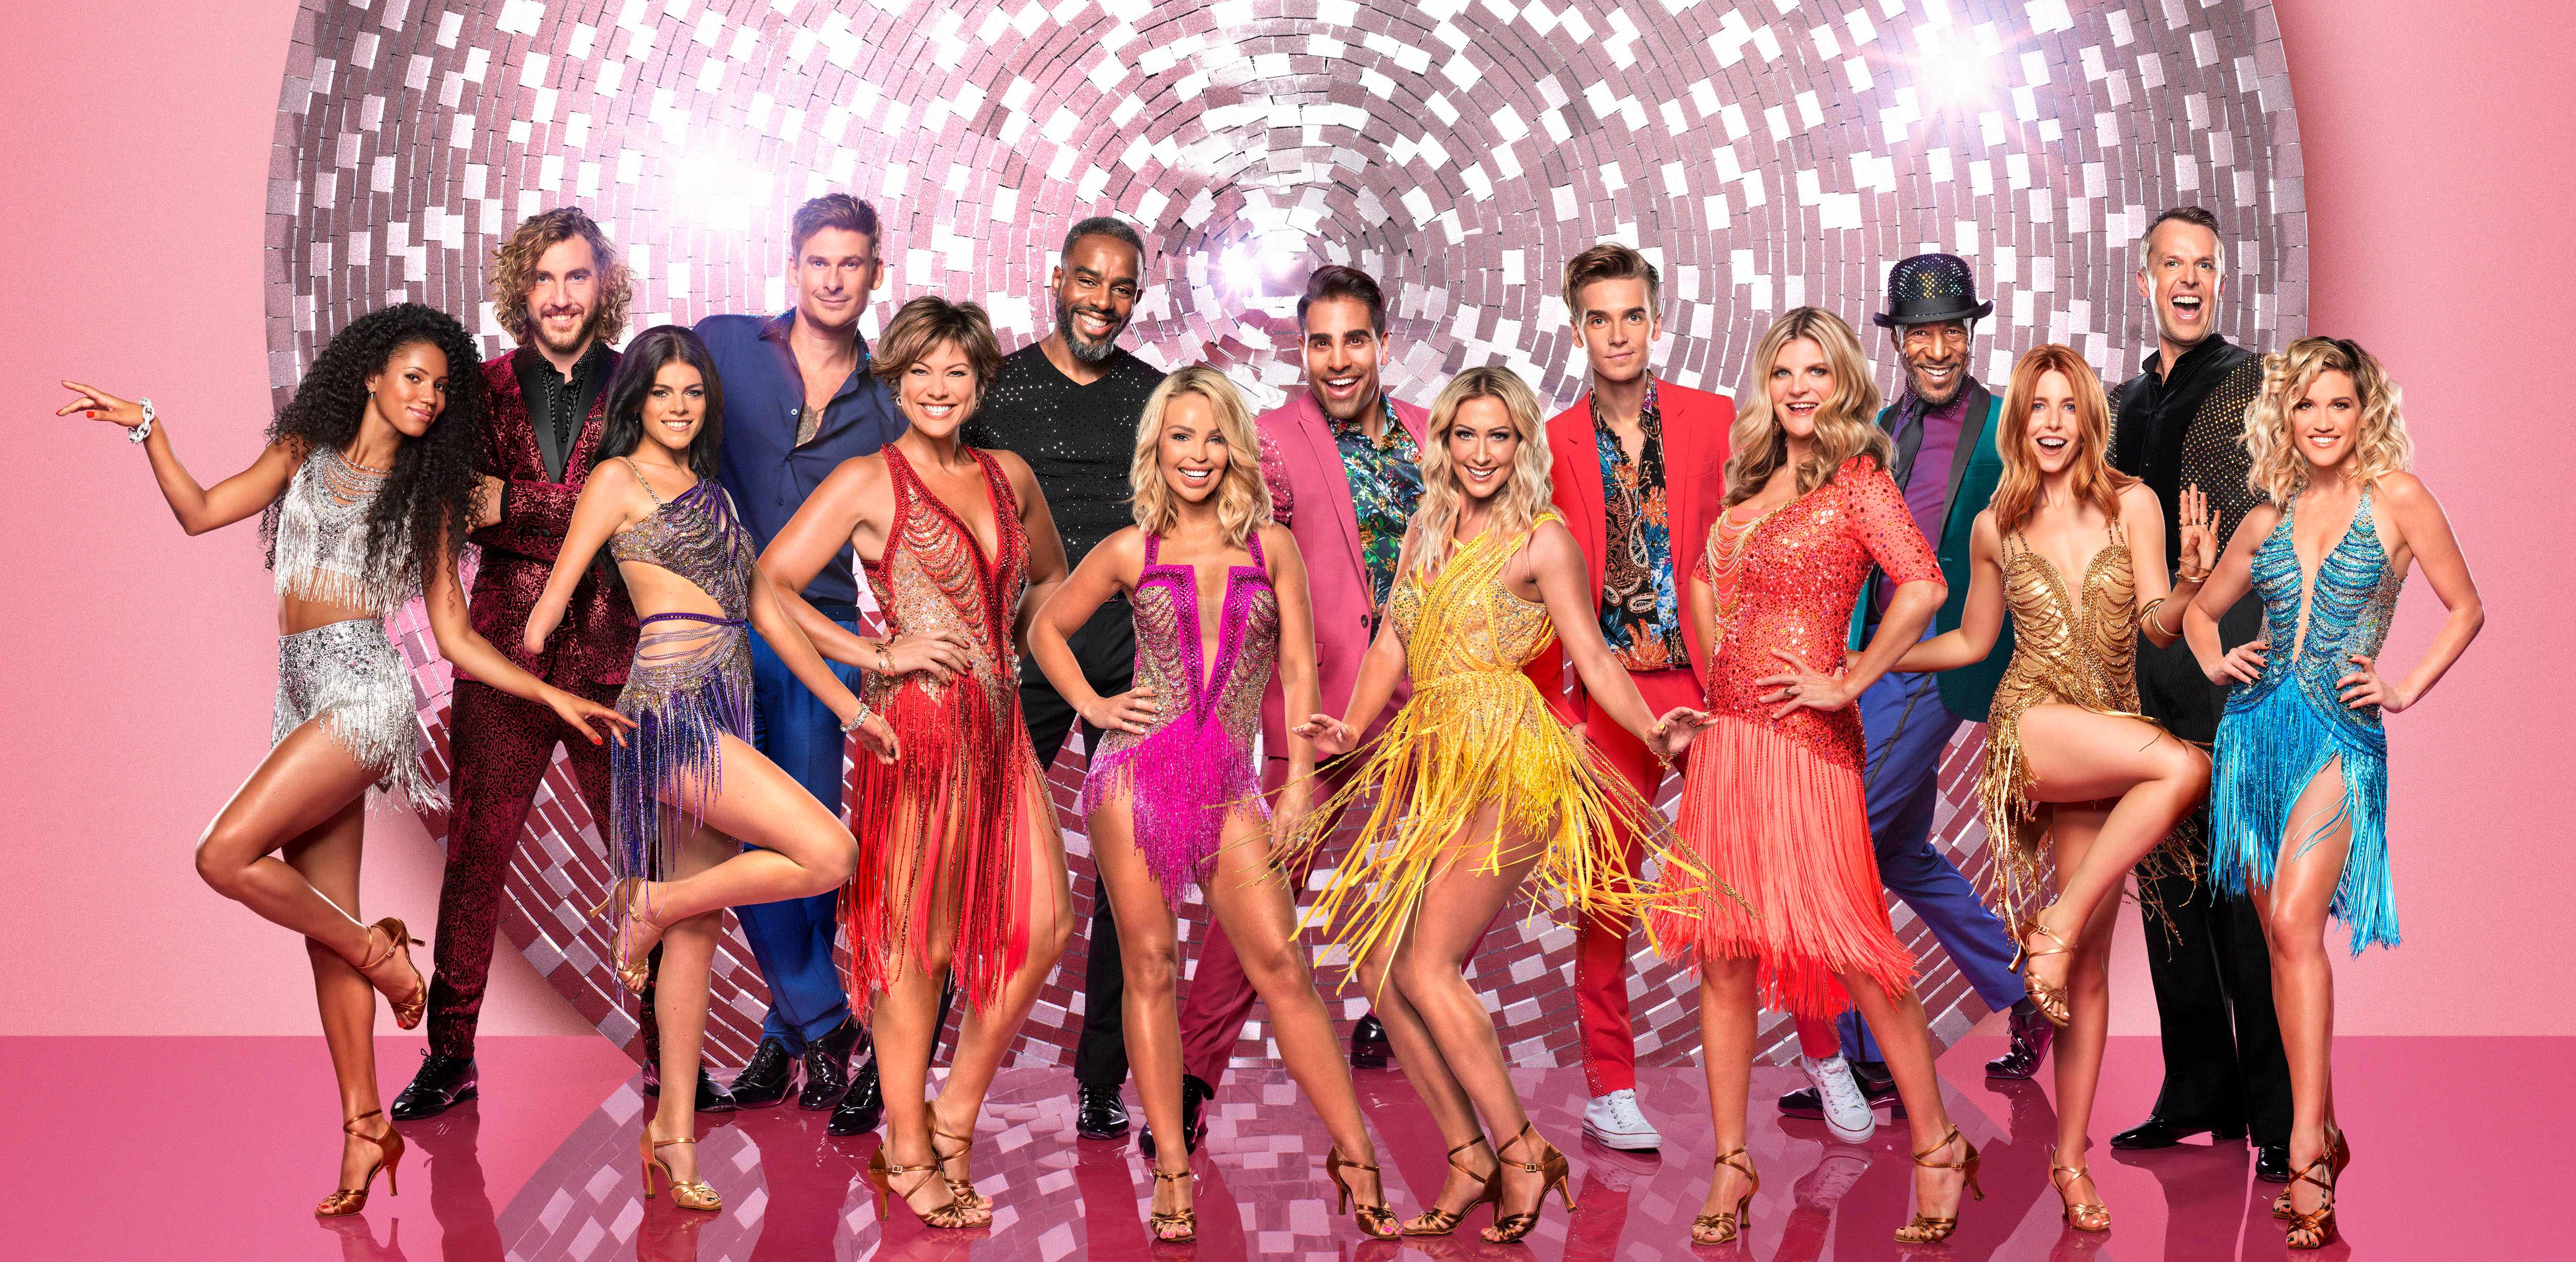 WARNING: Embargoed for publication until 00:00:01 on 04/09/2018 - Programme Name: Strictly Come Dancing 2018 - TX: 08/09/2018 - Episode: n/a (No. 1) - Picture Shows: Top L-R`: Seann Walsh, Lee Ryan, Charles Venn,Dr Ranj Singh, Joe Sugg, Danny John-Jules, Graeme Swann Bottom L-R: Vick Hope, Lauren Steadman, Kate Silverton, Katie Piper, Faye Tozer, Susannah Constantine, Stacey Dooley, Ashley Roberts Seann Walsh, Lee Ryan, Charles Venn, Dr Ranj Singh, Joe Sugg, Danny John-Jules, Graeme Swann, Vick Hope, Lauren Steadman, Kate Silverton, Katie Piper, Faye Tozer, Susannah Constantine, Stacey Dooley, Ashley Roberts - (C) BBC - Photographer: Ray Burmiston